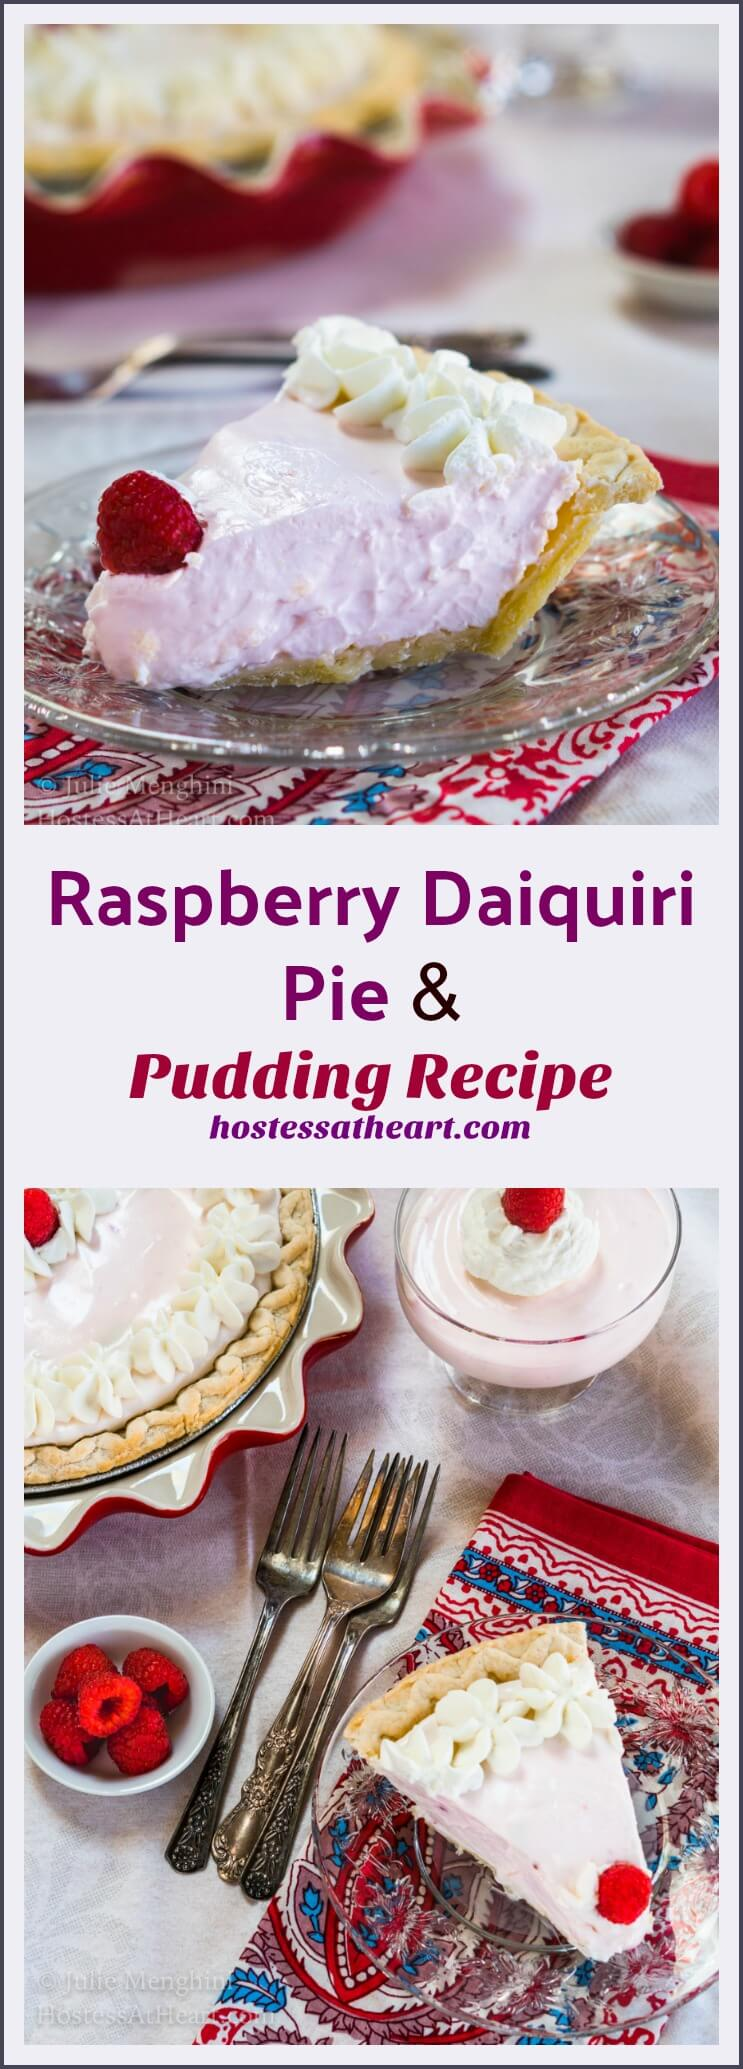 If you love a good Daiquiri and a delicious creamy pie, you're going to love this Raspberry Daiquiri Pie. Don't want to mess with a crust? The filling makes a delicious pudding dessert! #pierecipes #homemadepie #dessert #rum | Homemade Pie Recipe | Pie Recipe Ideas | Raspberry Dessert